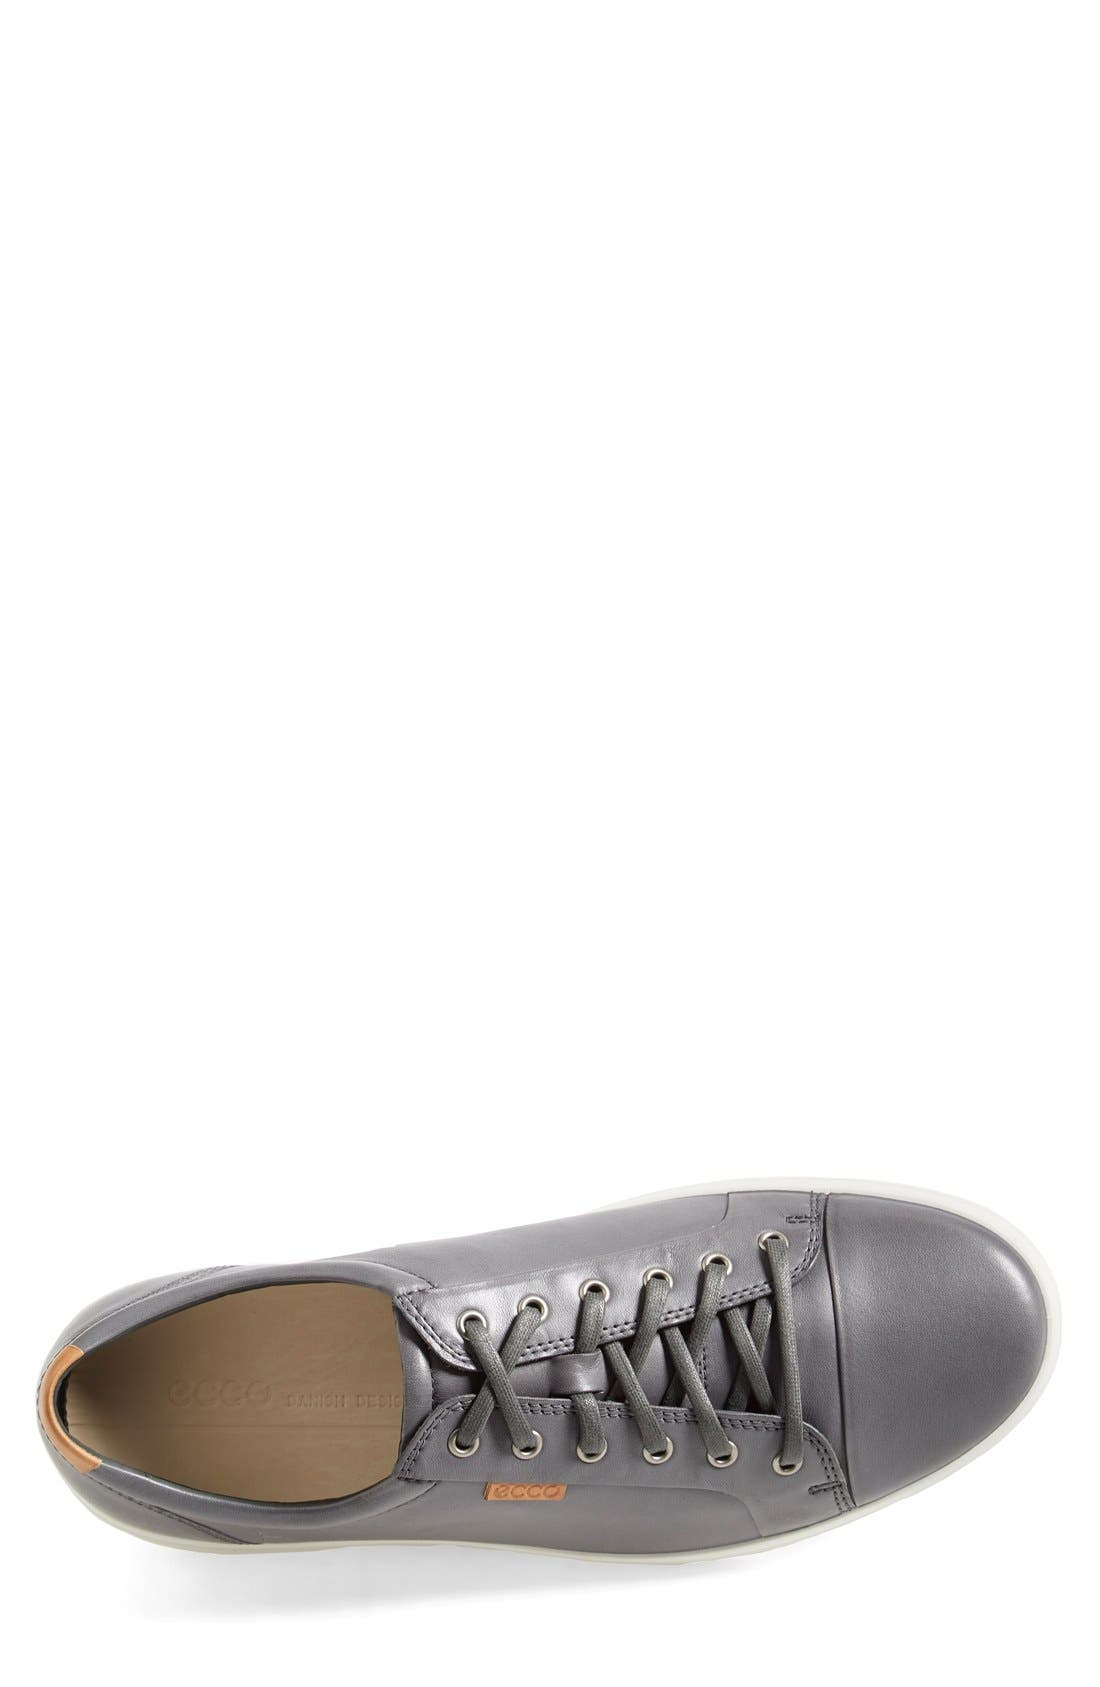 Alternate Image 3  - ECCO Soft VII Lace-Up Sneaker (Men)